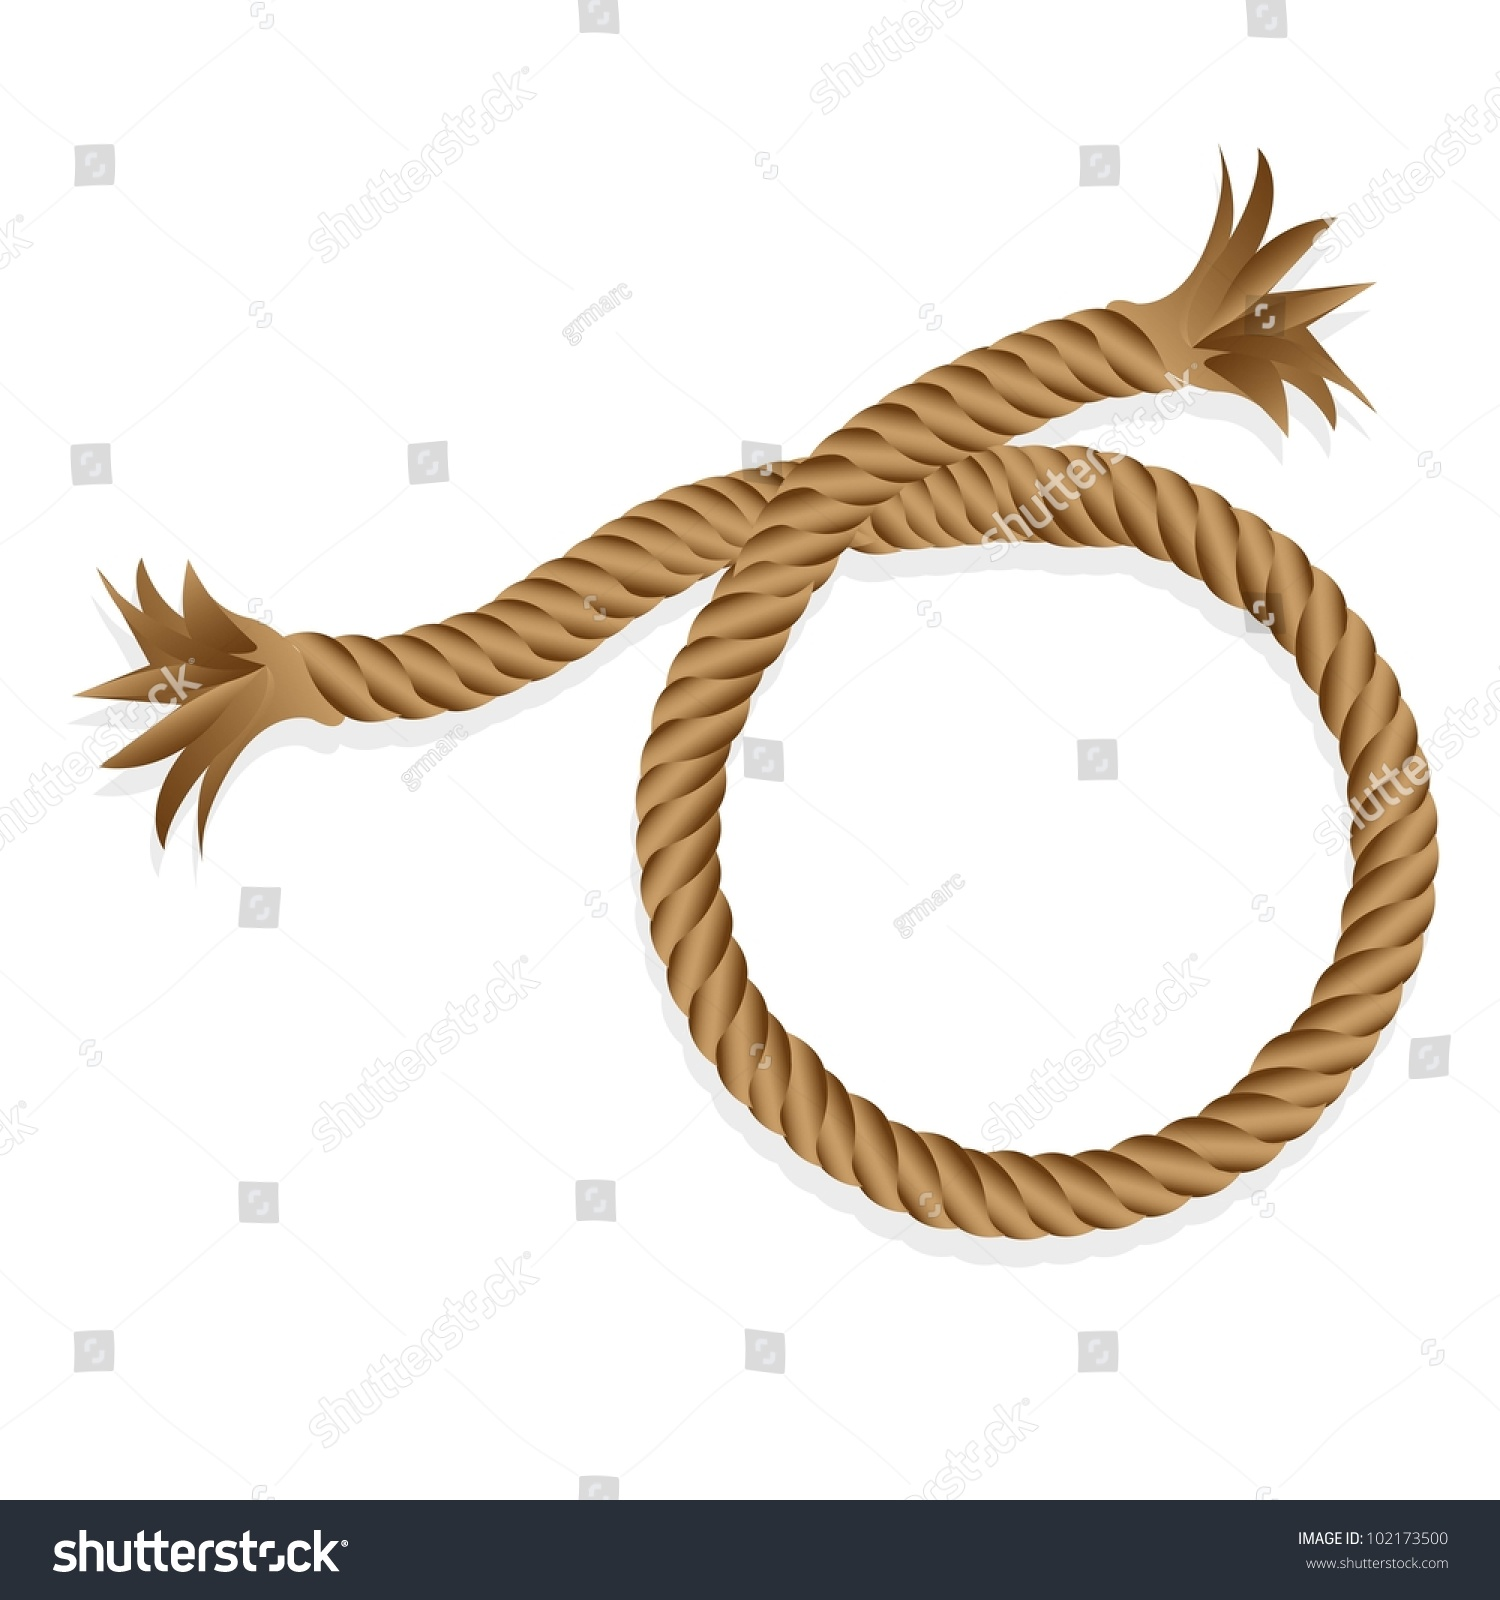 Braided Rope Isolated On White Background Stock Vector Royalty Free Bowline Knot Diagram Clipart Best Illustration